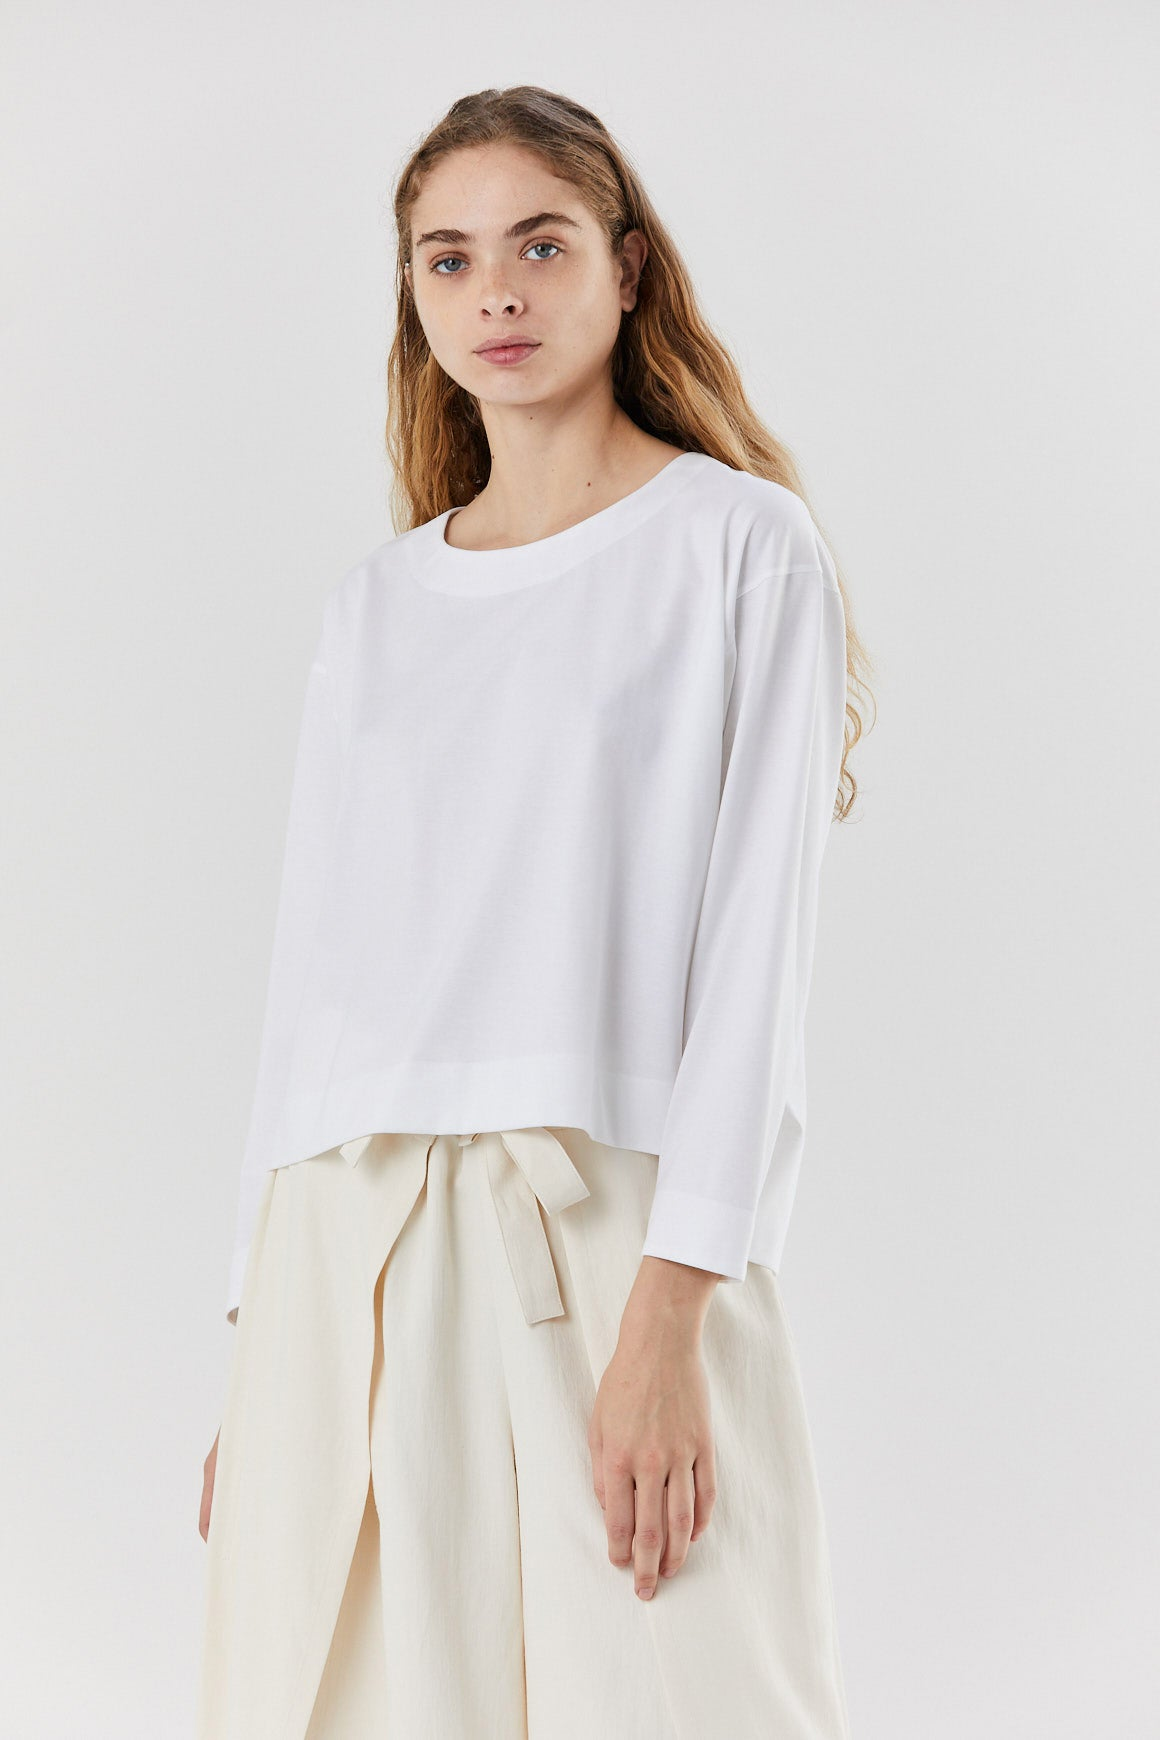 Pleats Please by Issey Miyake - easy-t shirt, white